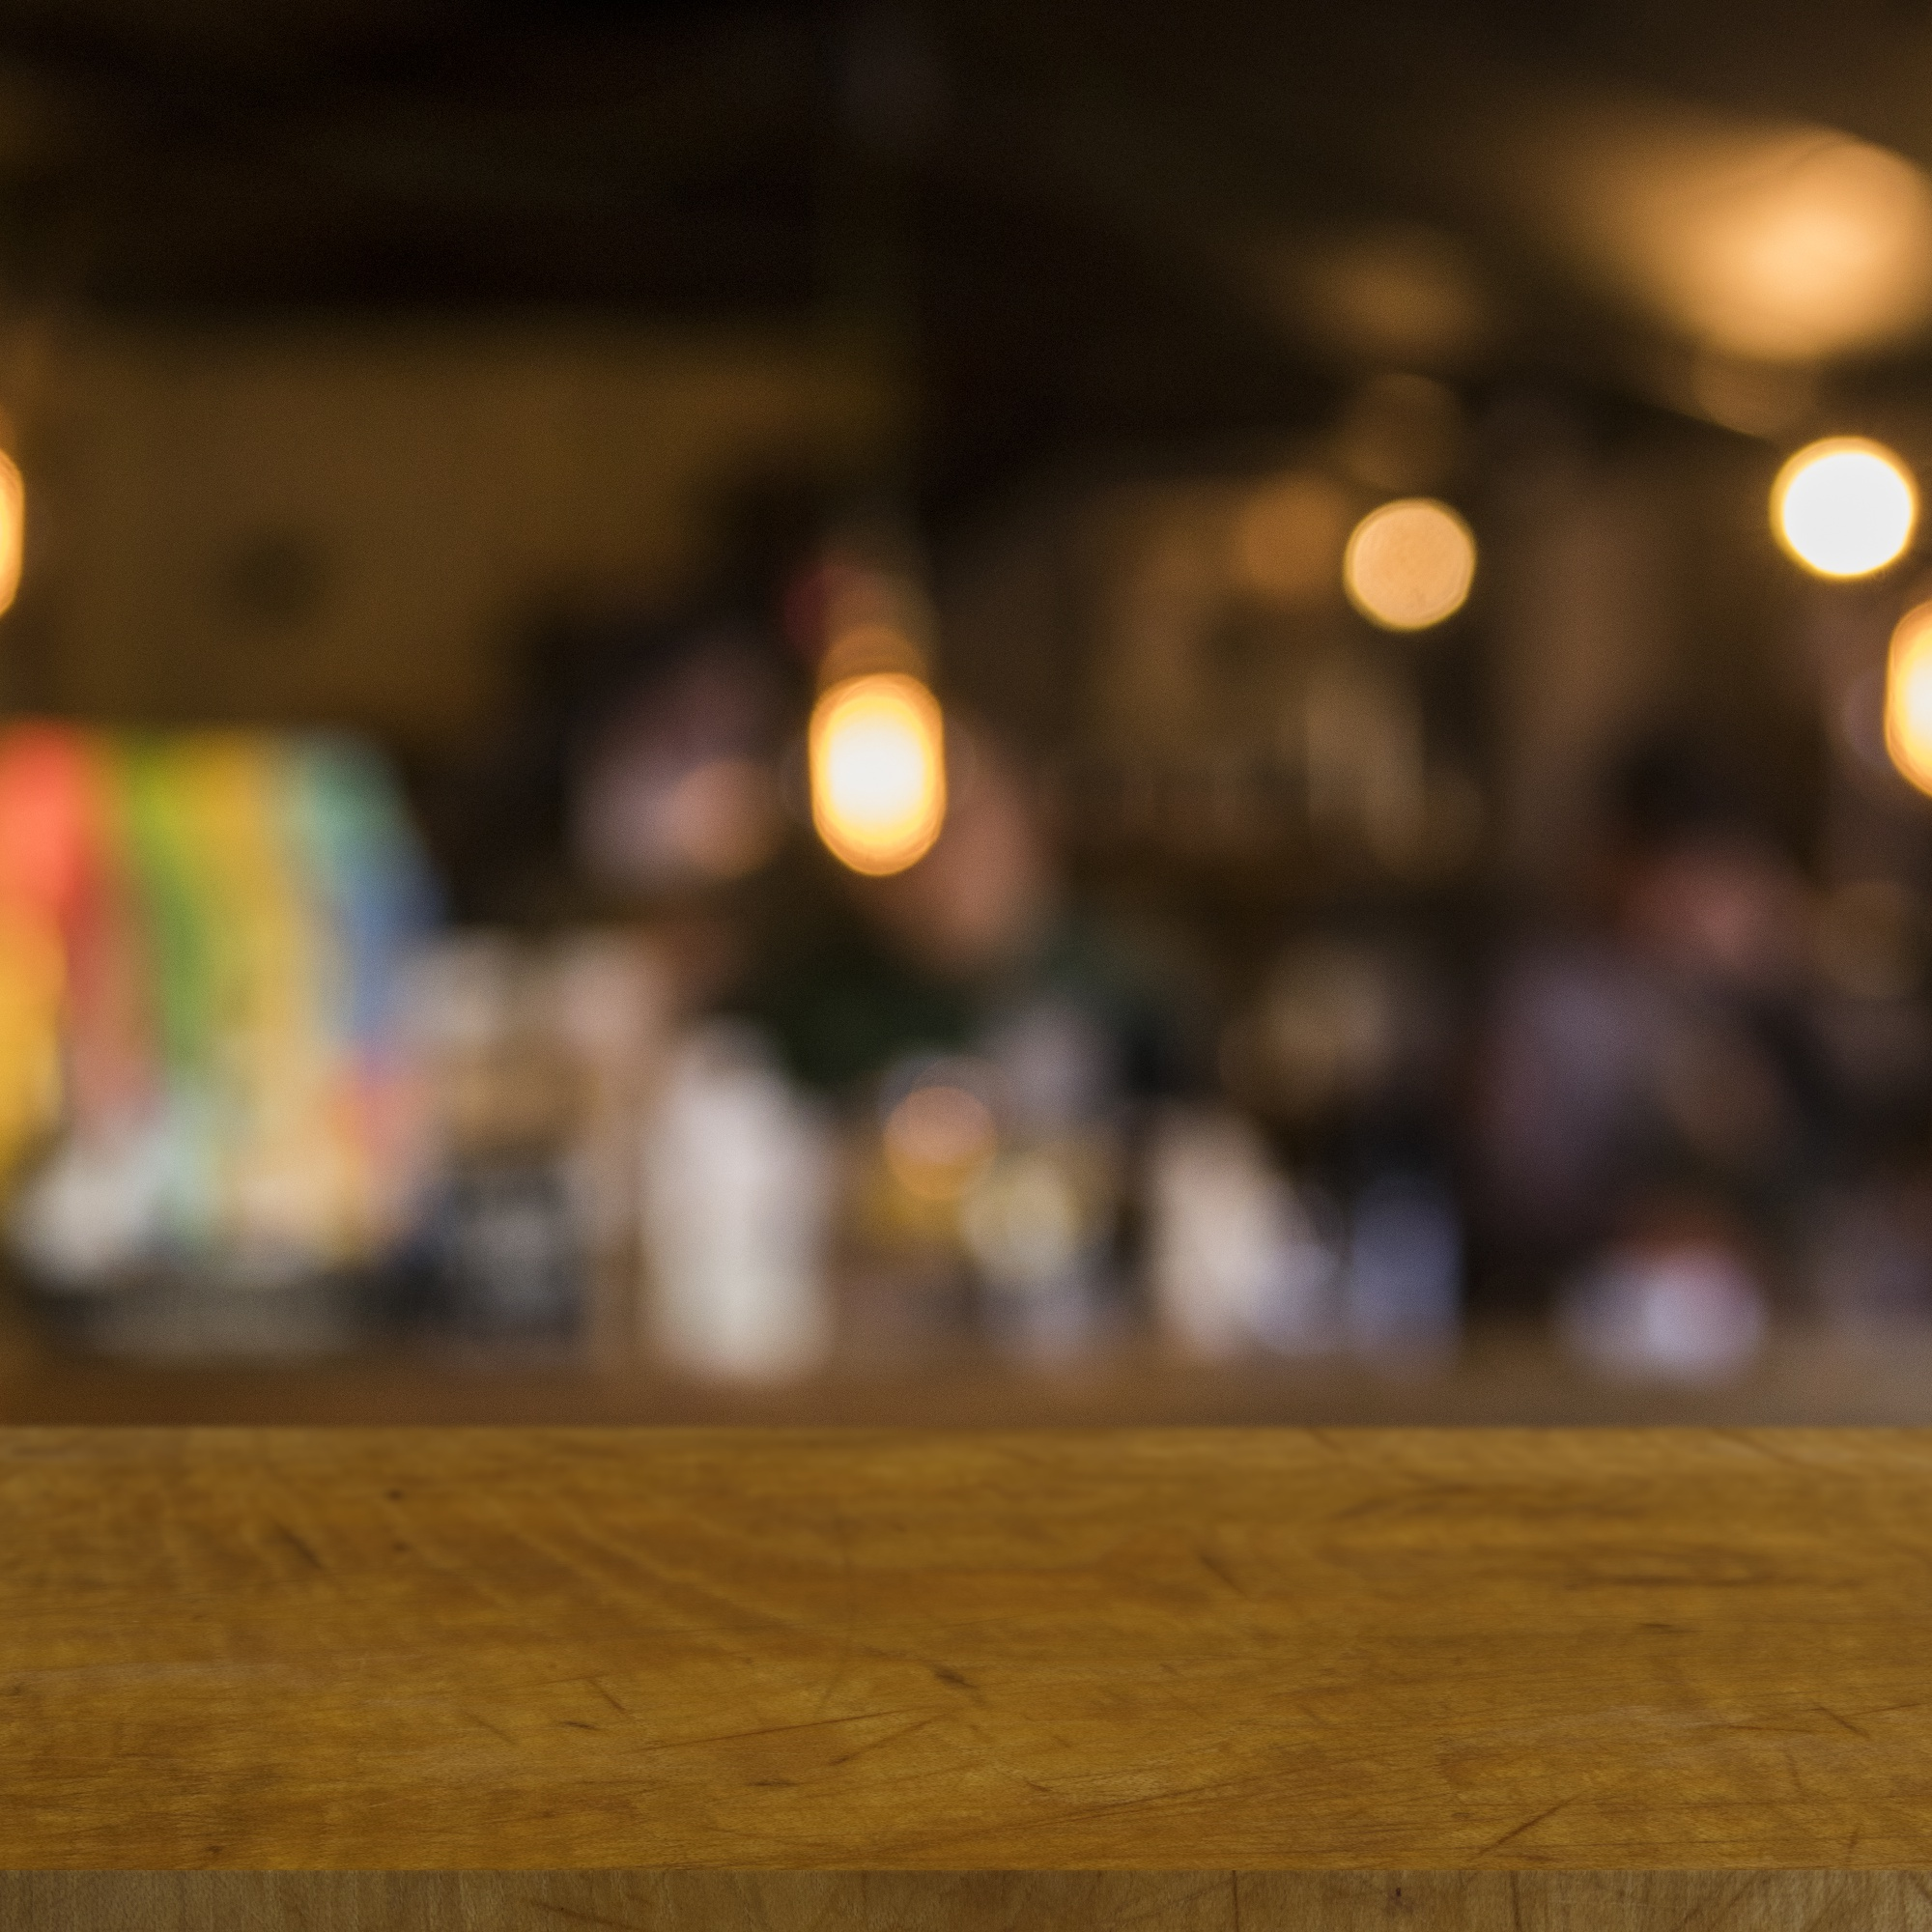 Wooden table in front of blurred restaurant lights